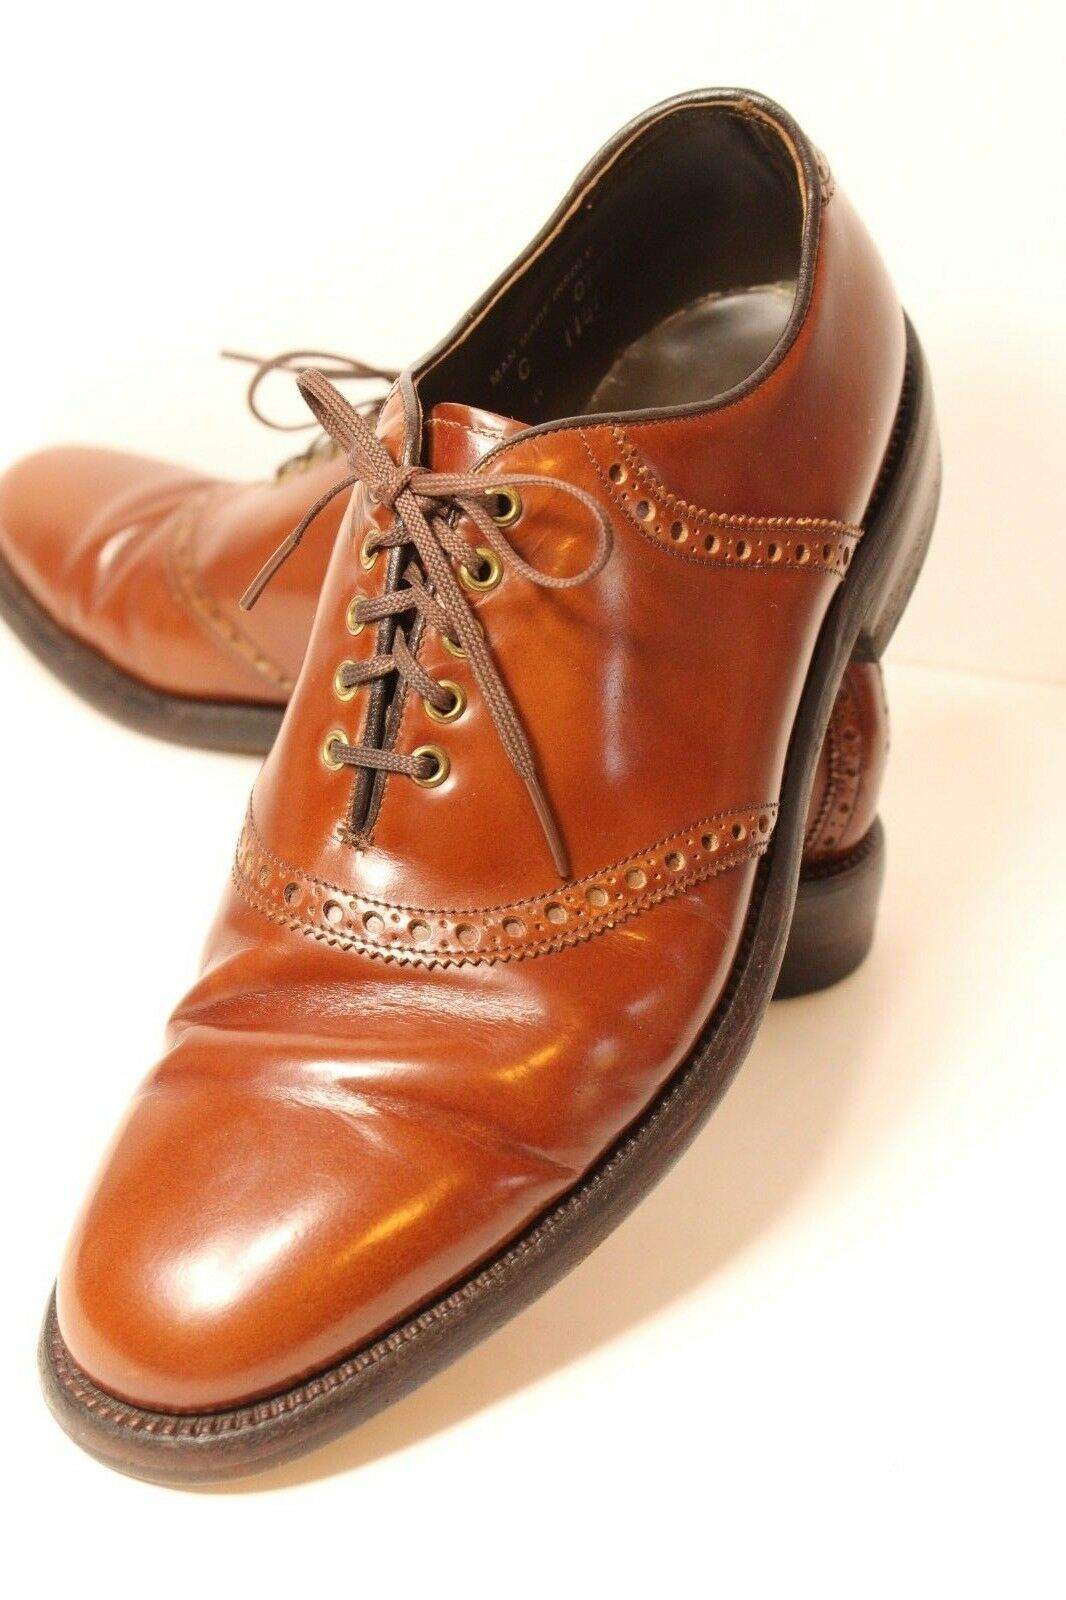 Nettleton Nettleton Nettleton Mens Sz 9 Walnut braun Leather with Brogue Lace-up Oxford Dress schuhe 69271b